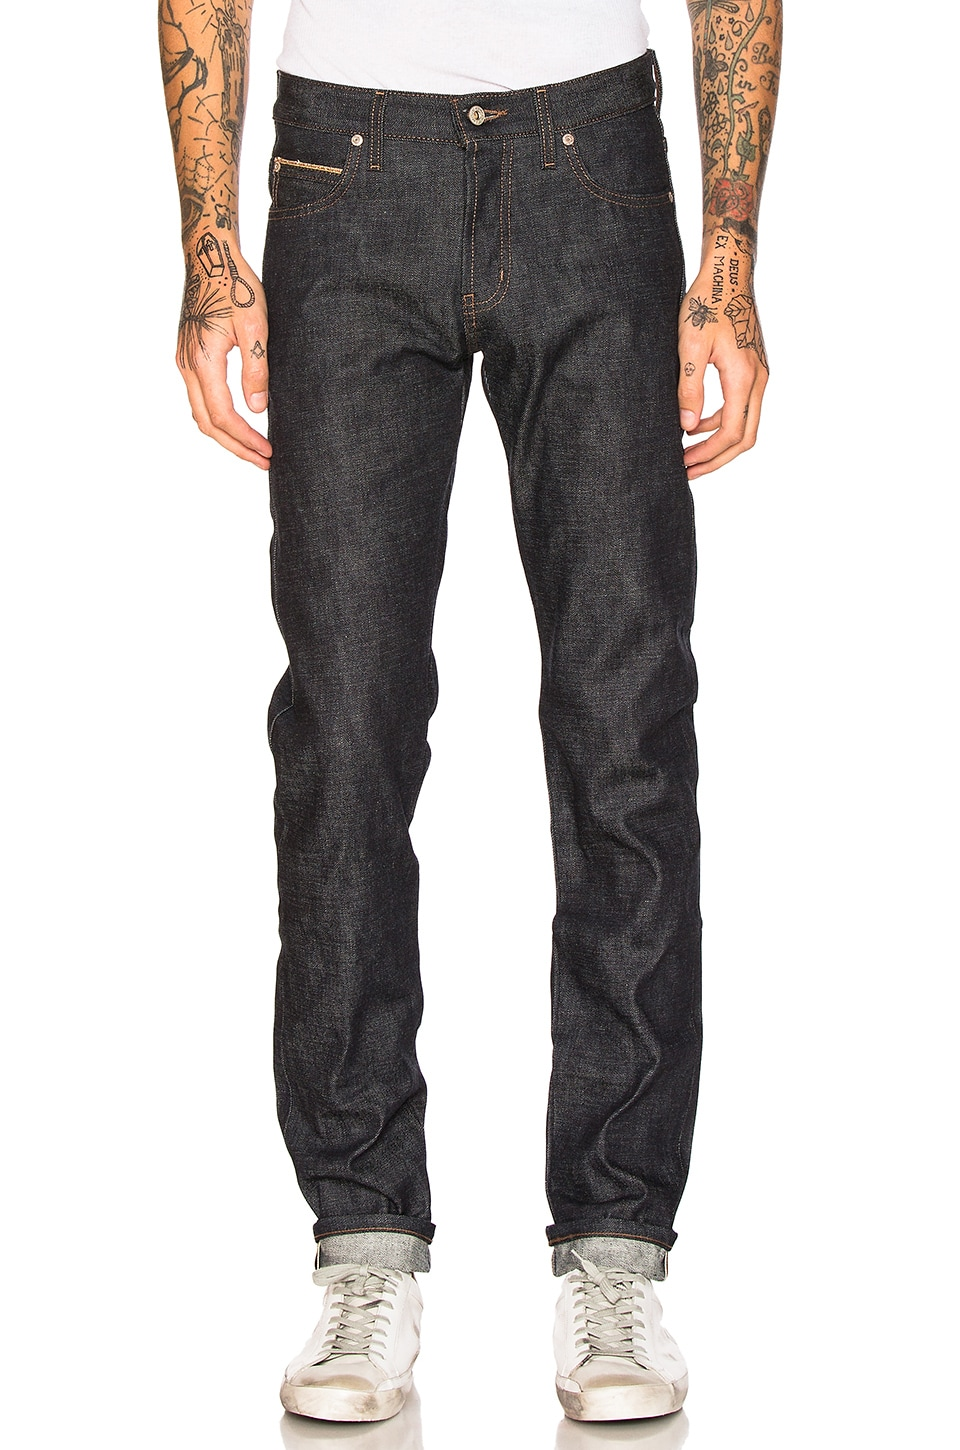 Super Skinny Guy Chinese New Year Fire Rooster 12.5oz by Naked & Famous Denim